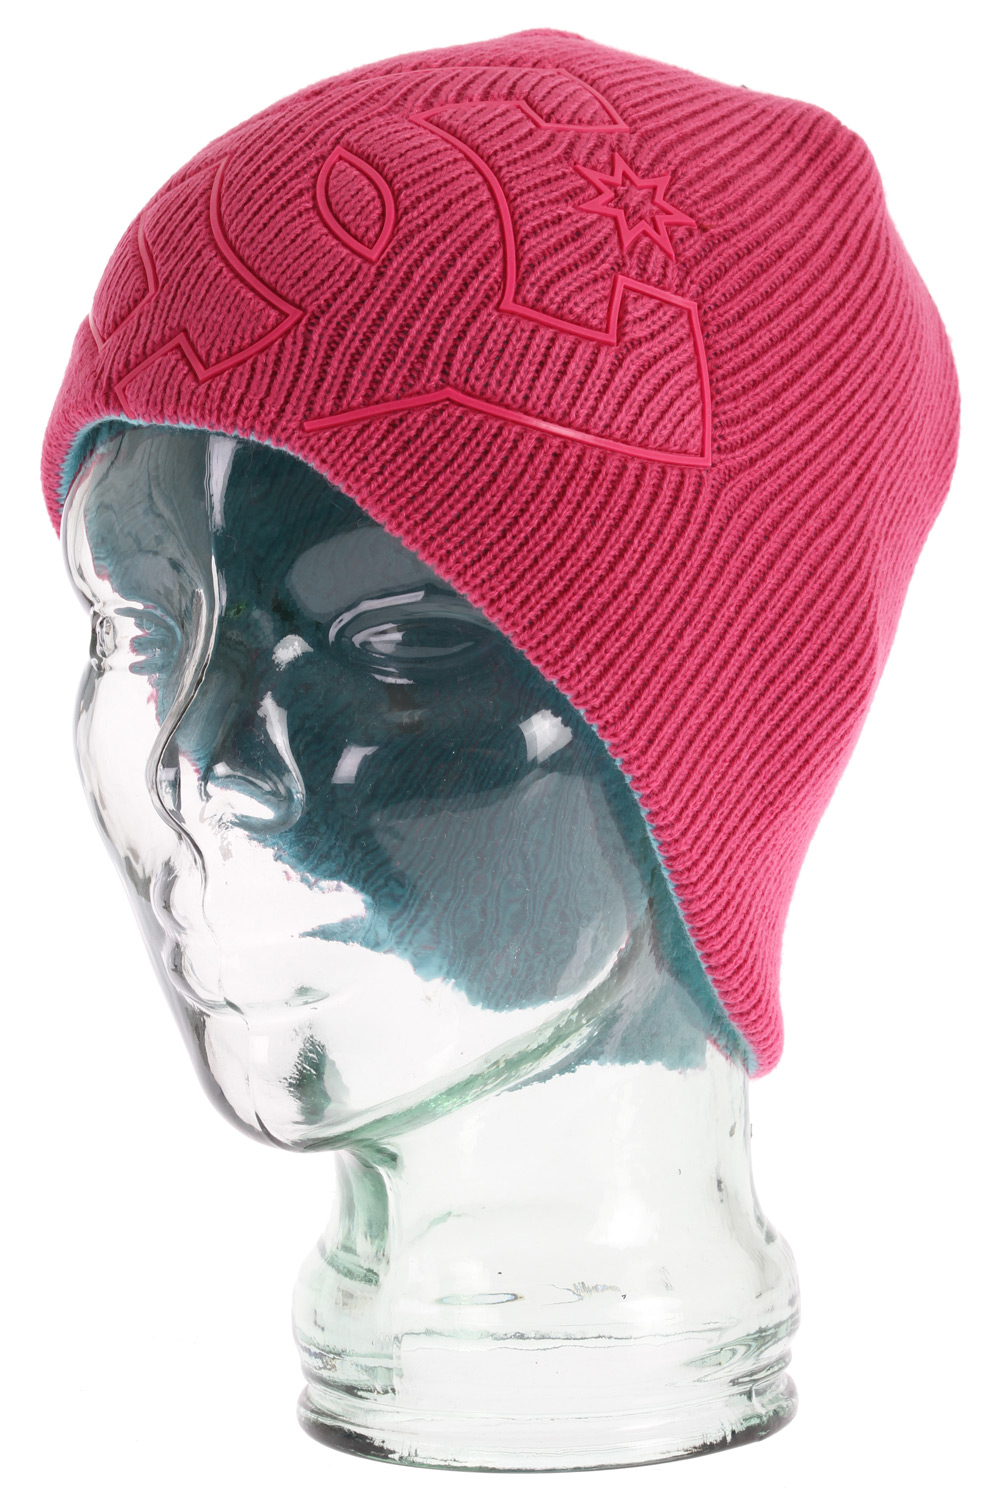 Reversible standard fit beanie. 100% acrylic. - $11.95